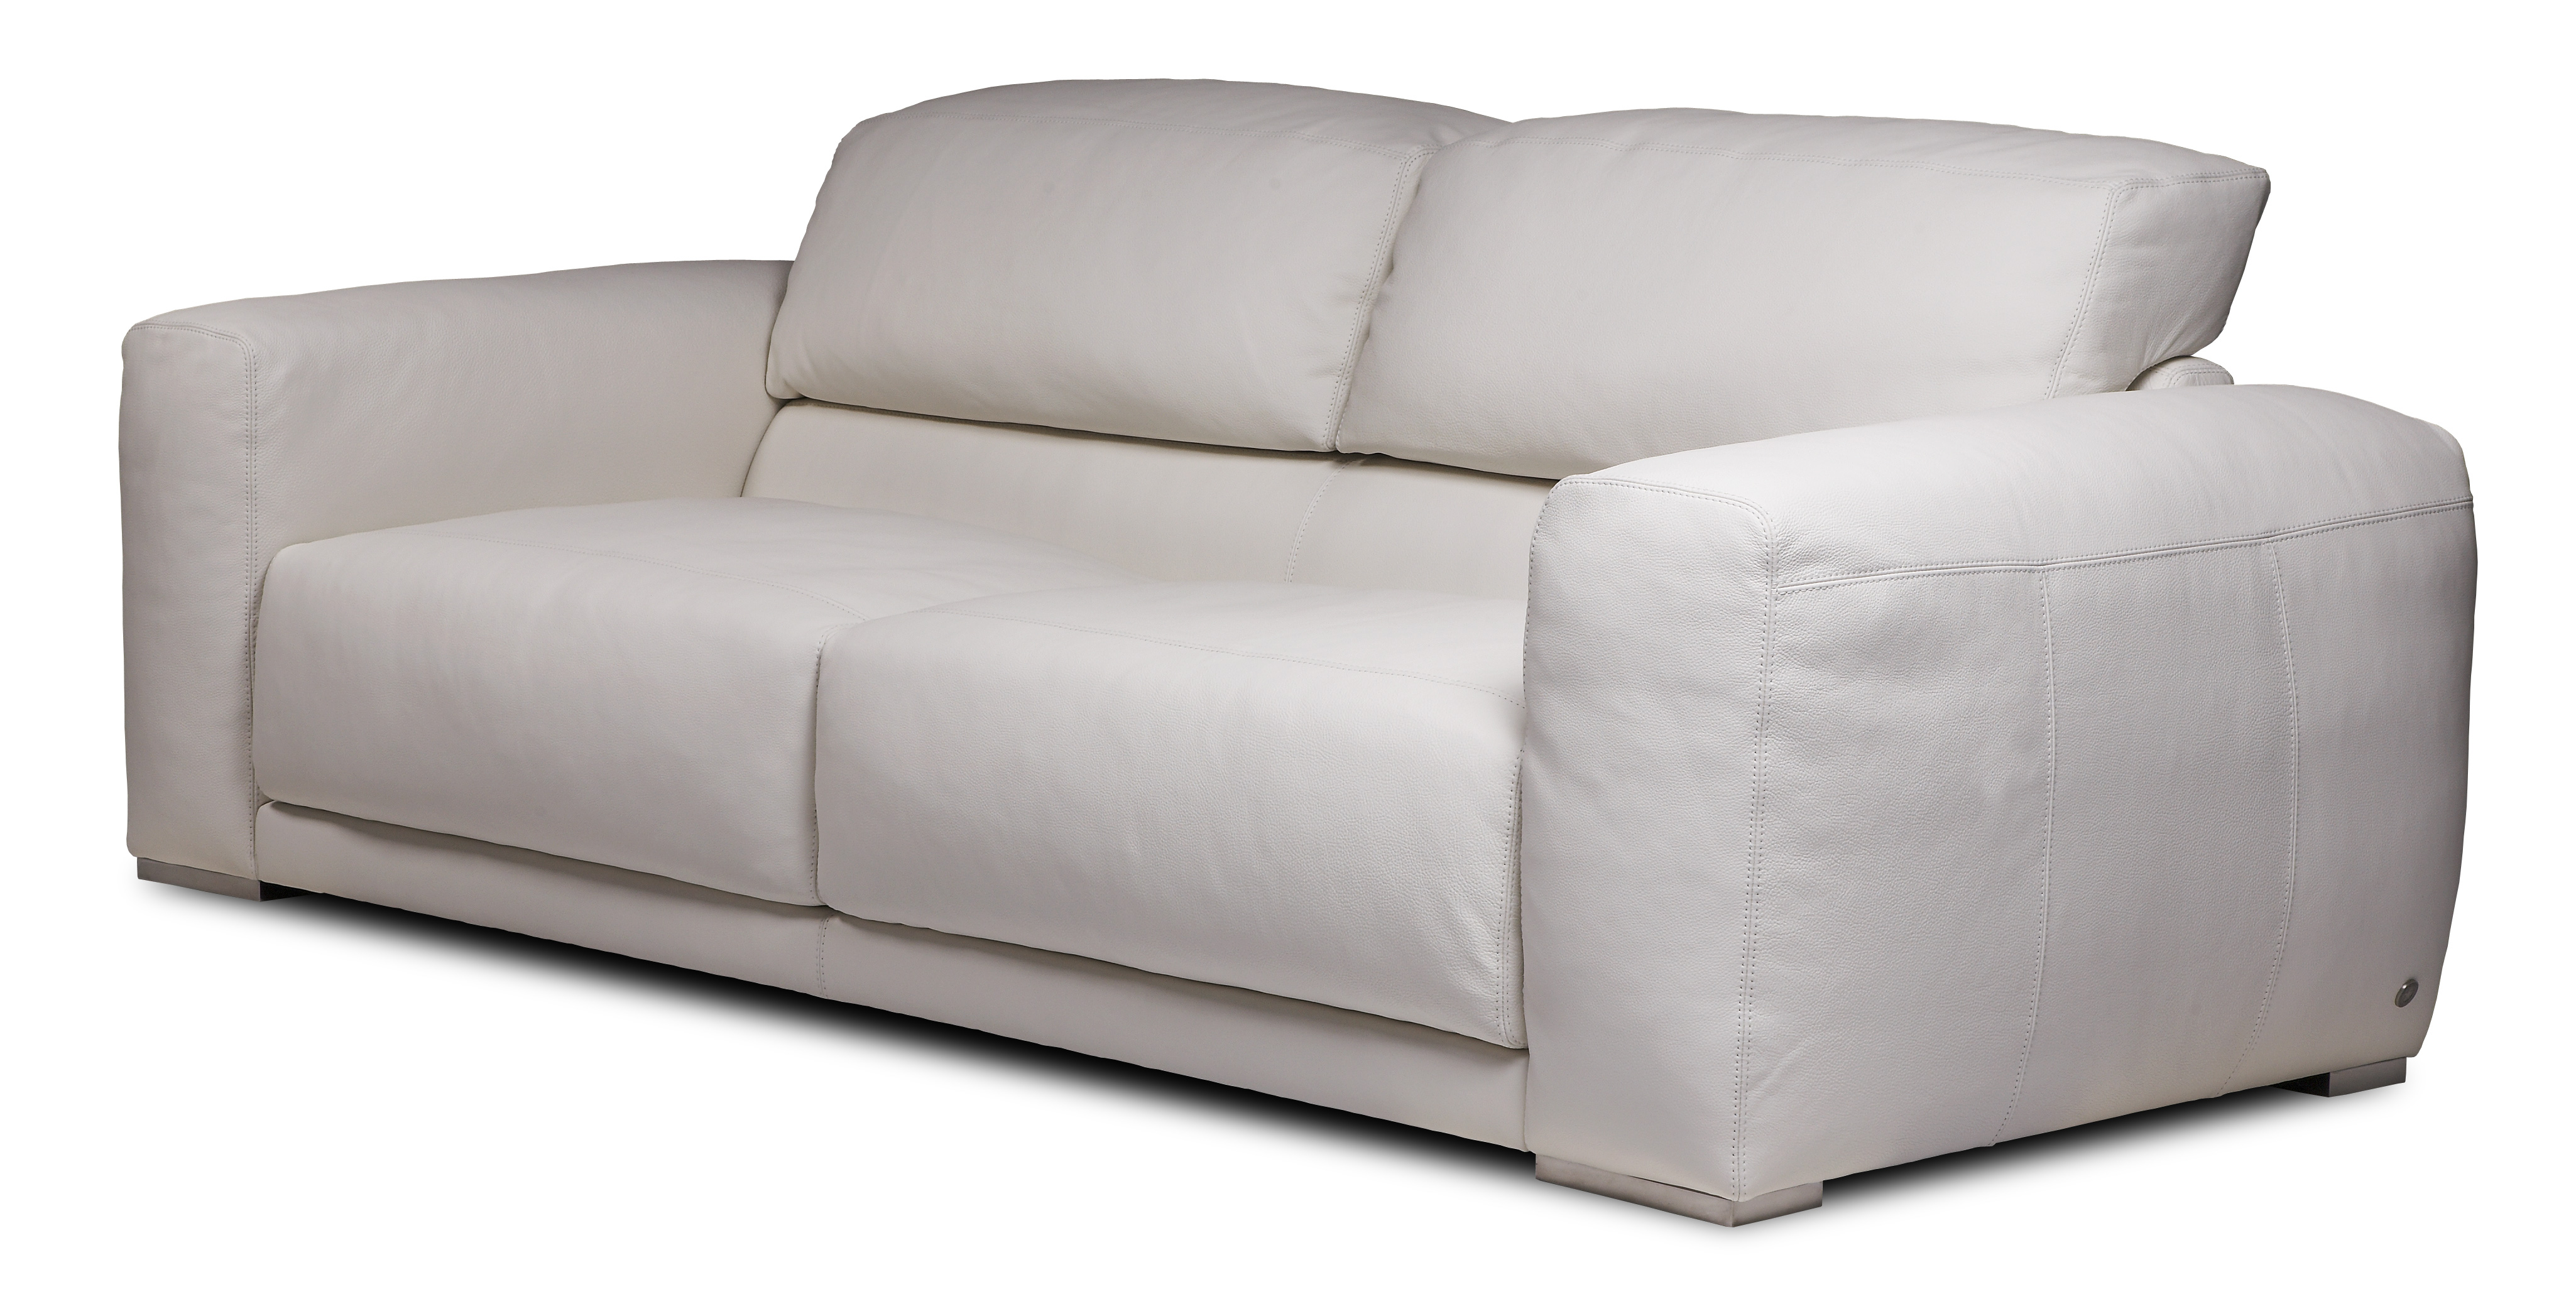 American Leather Malibu sofa